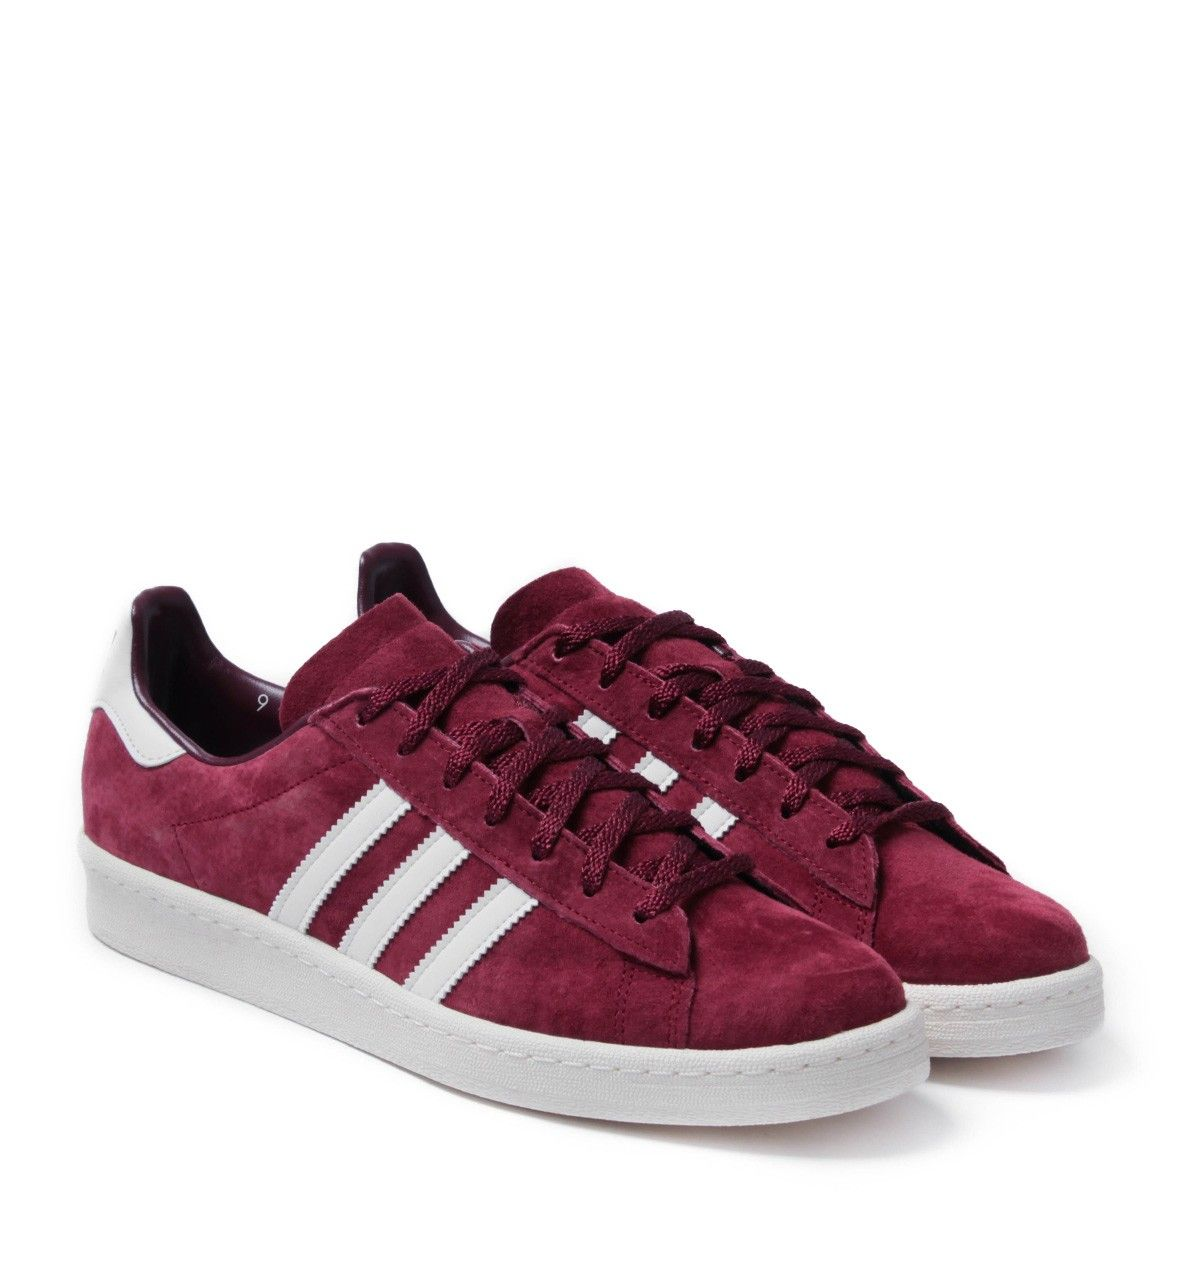 Buy your Adidas Originals Campus Japan Pack Burgundy Suede Trainers from  Woodhouse Clothing - bringing you the latest in men\u0027s fashion.